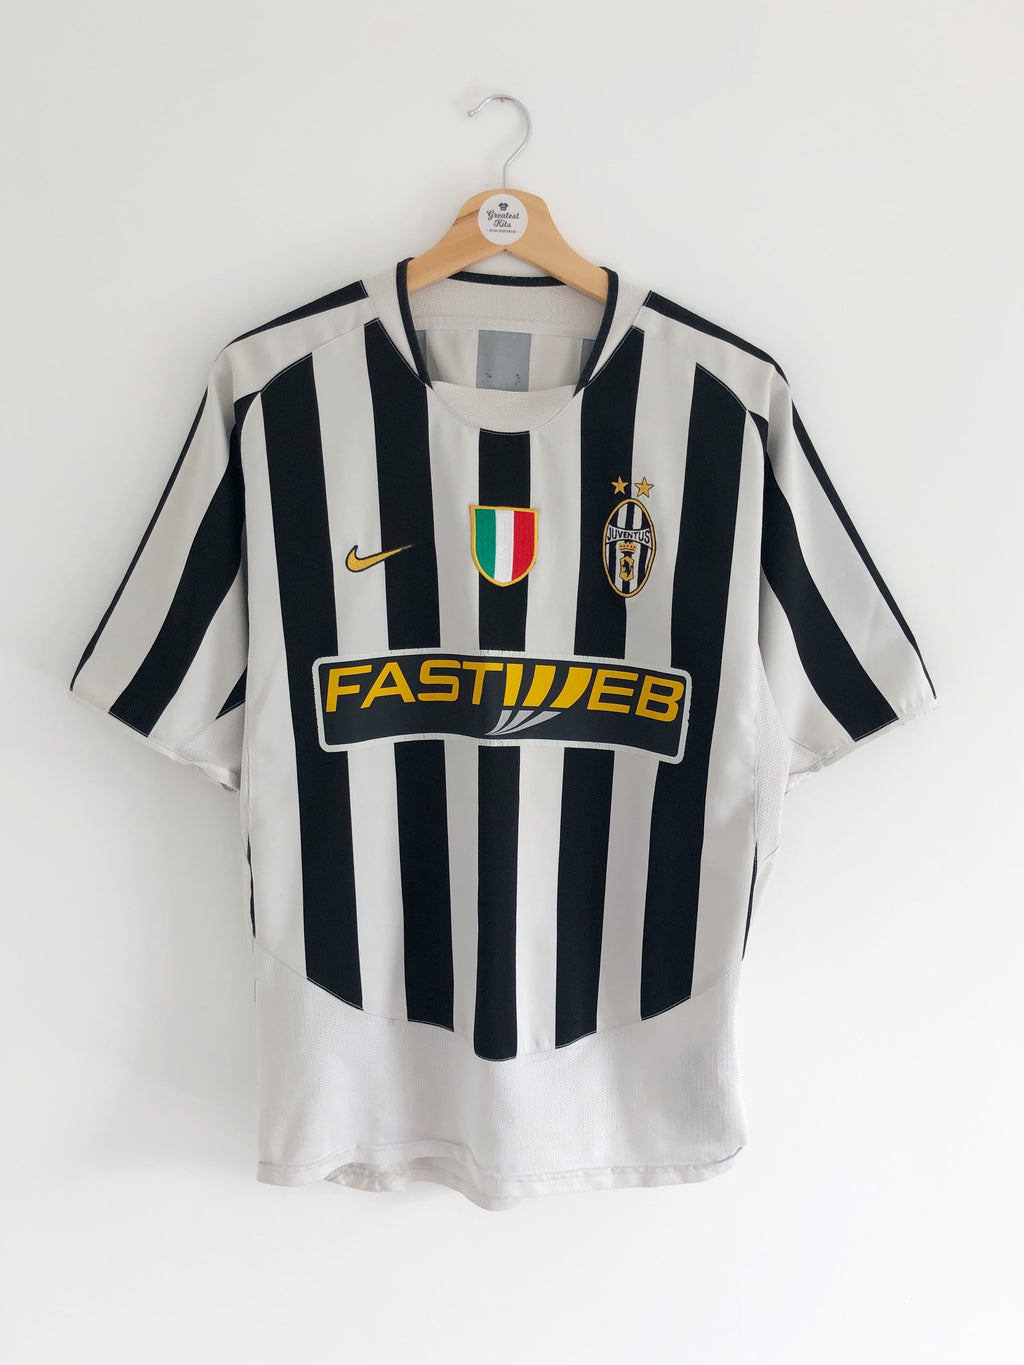 2003/04 Juventus Home Shirt (M) 7/10